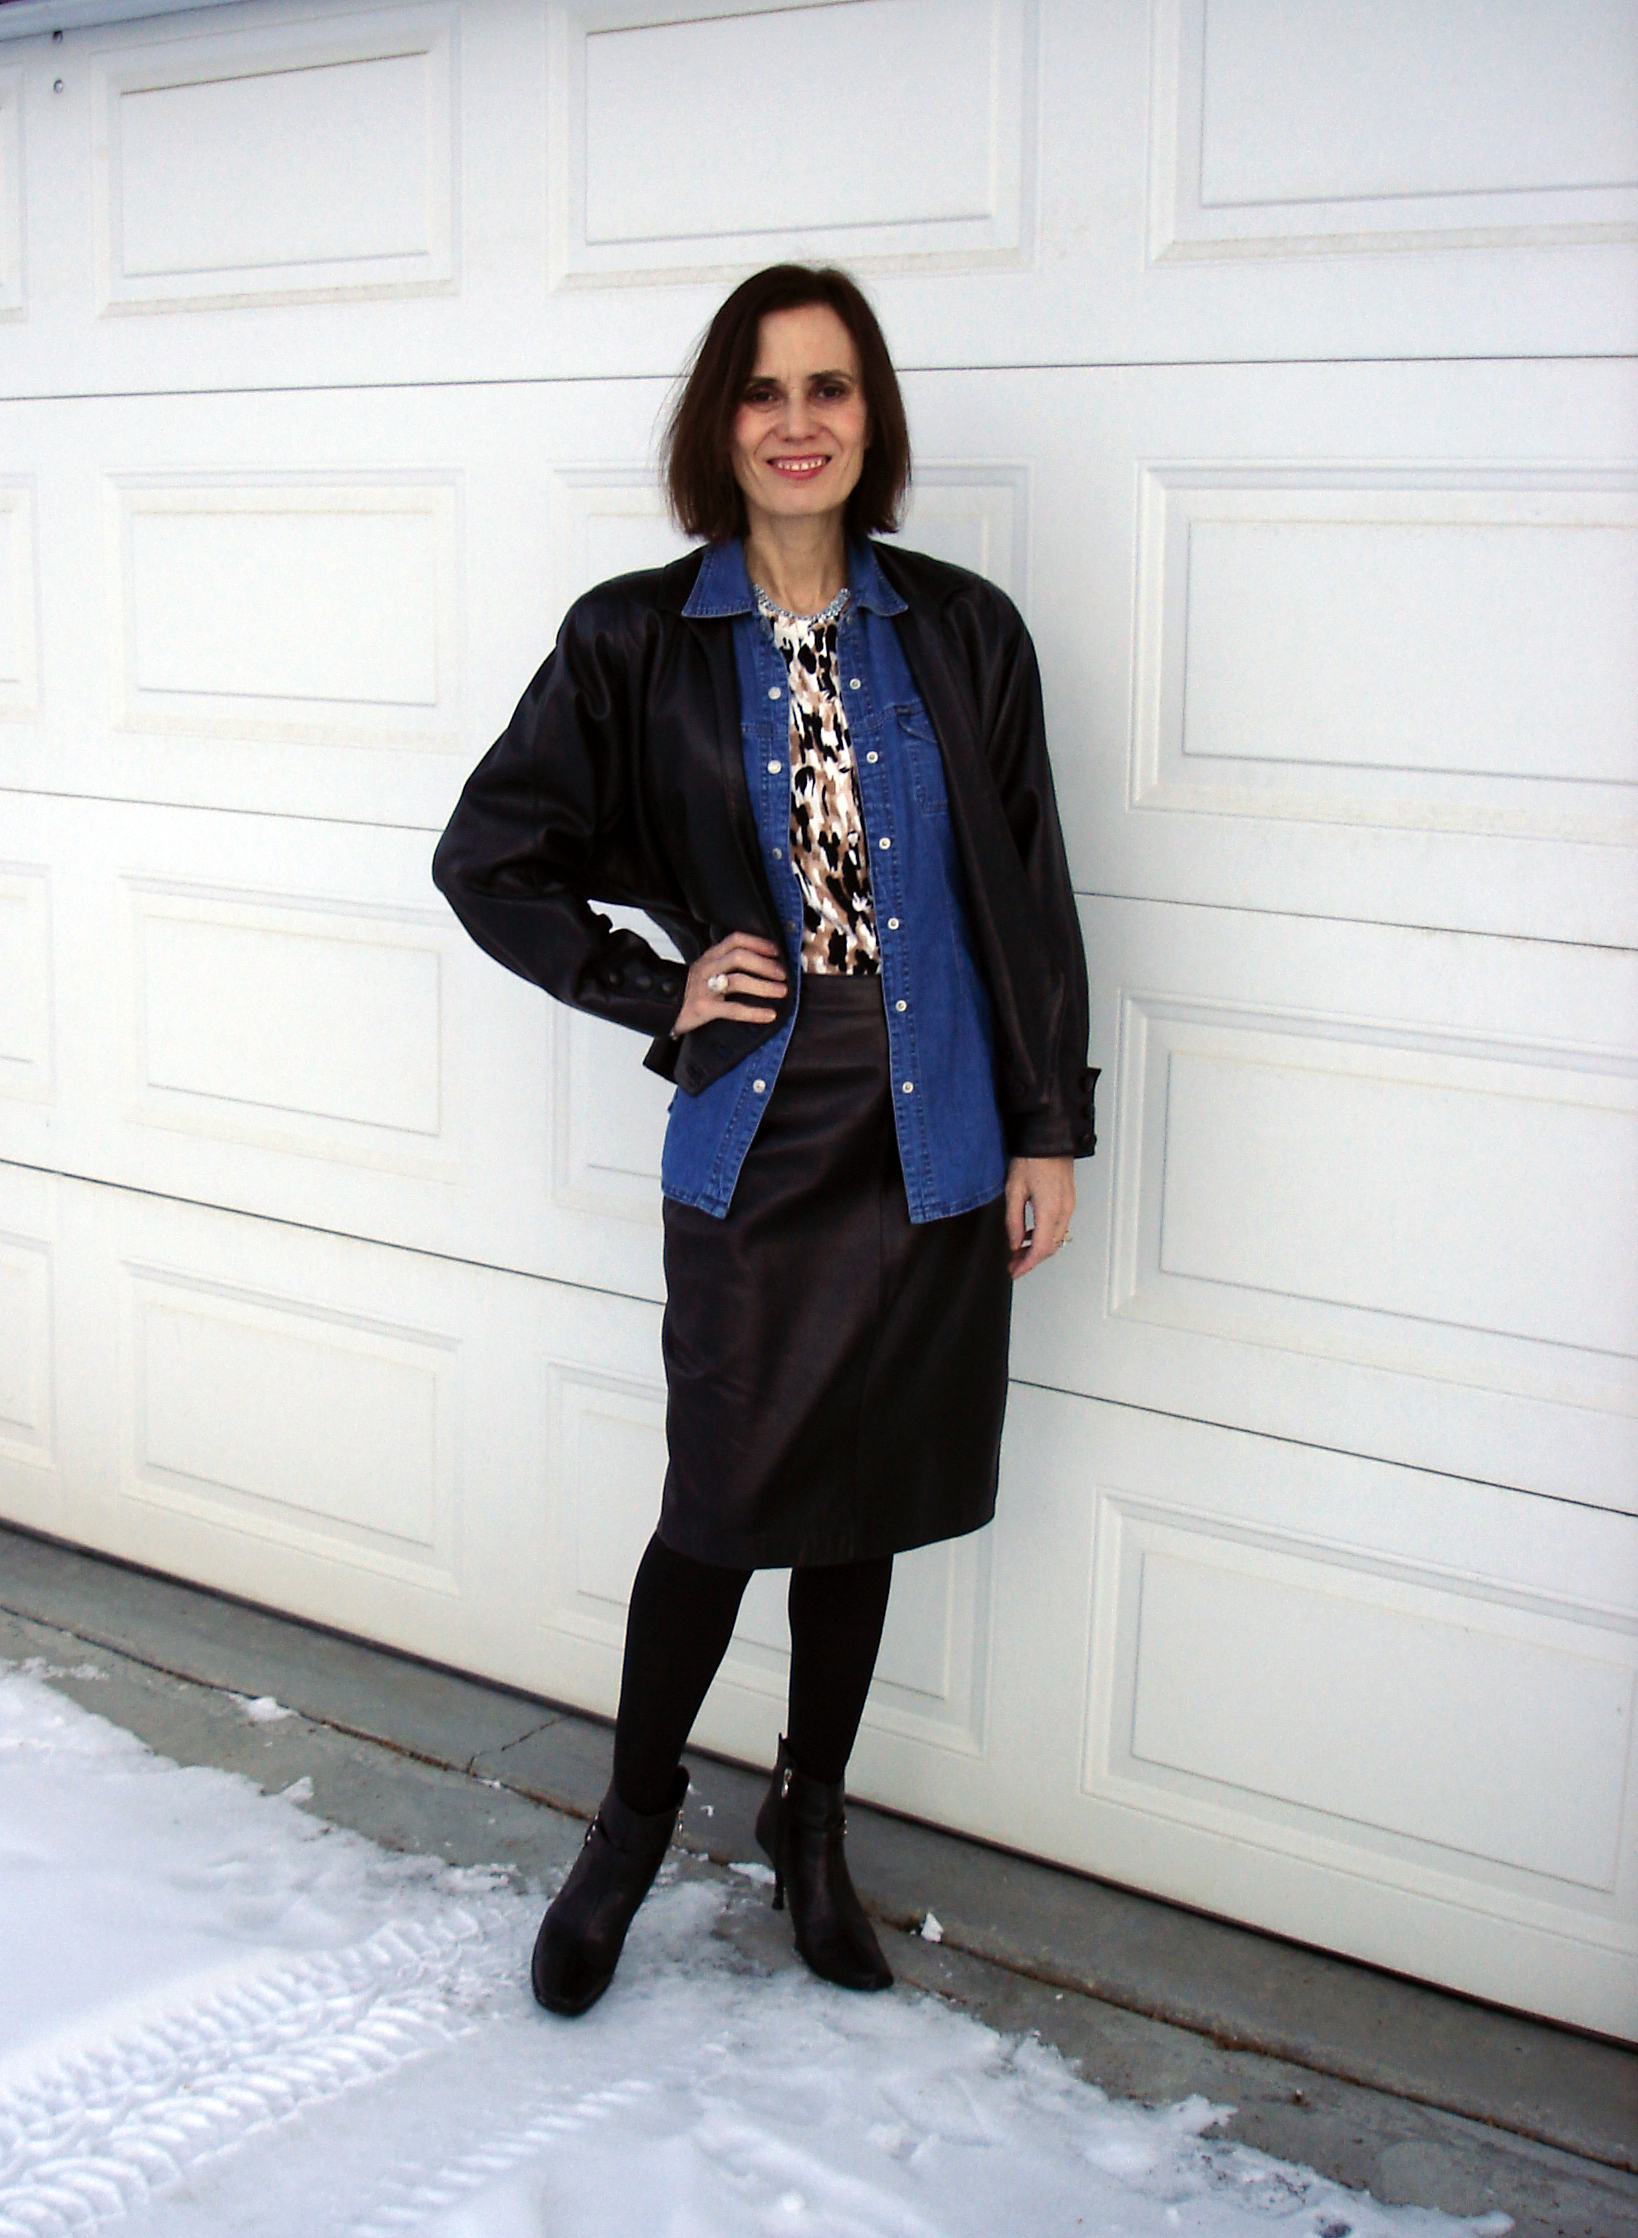 #fashionover40 #fashionover50 How to look great in denim over 40 @ High Latitude Style @ http://www.highlatitudestyle.com